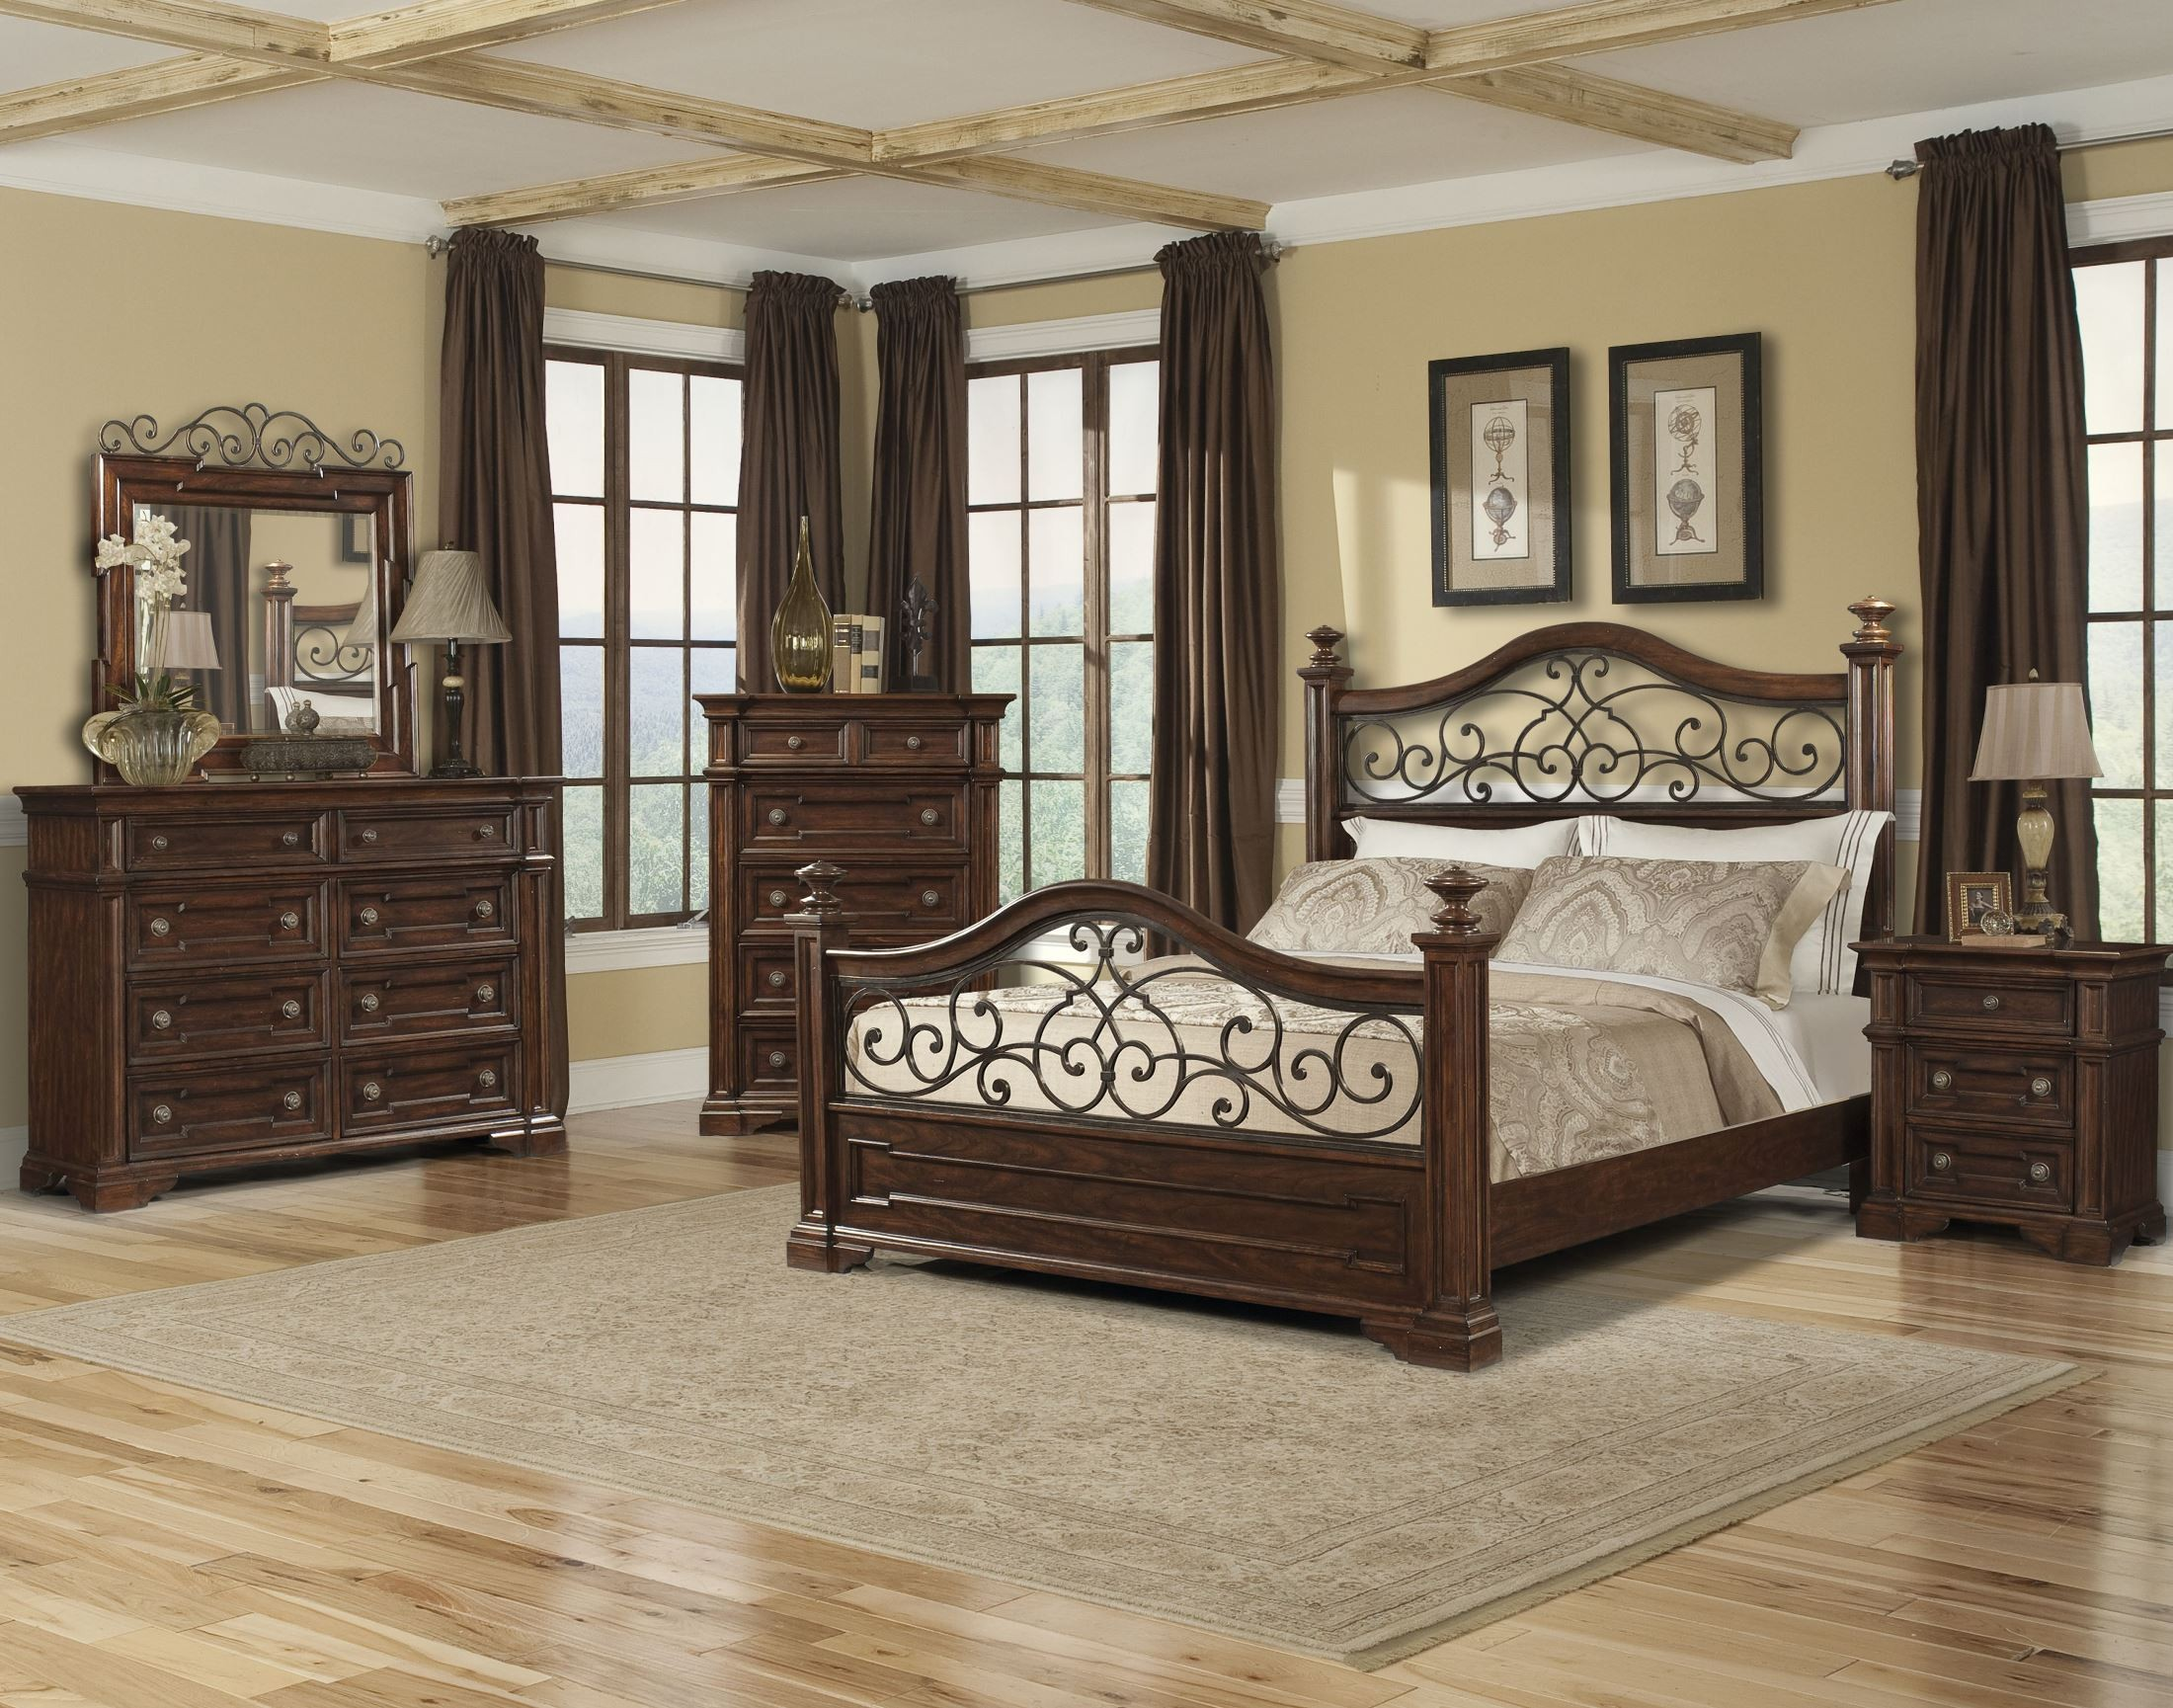 San Marcos King Poster Bed From Klaussner 872 Kbed